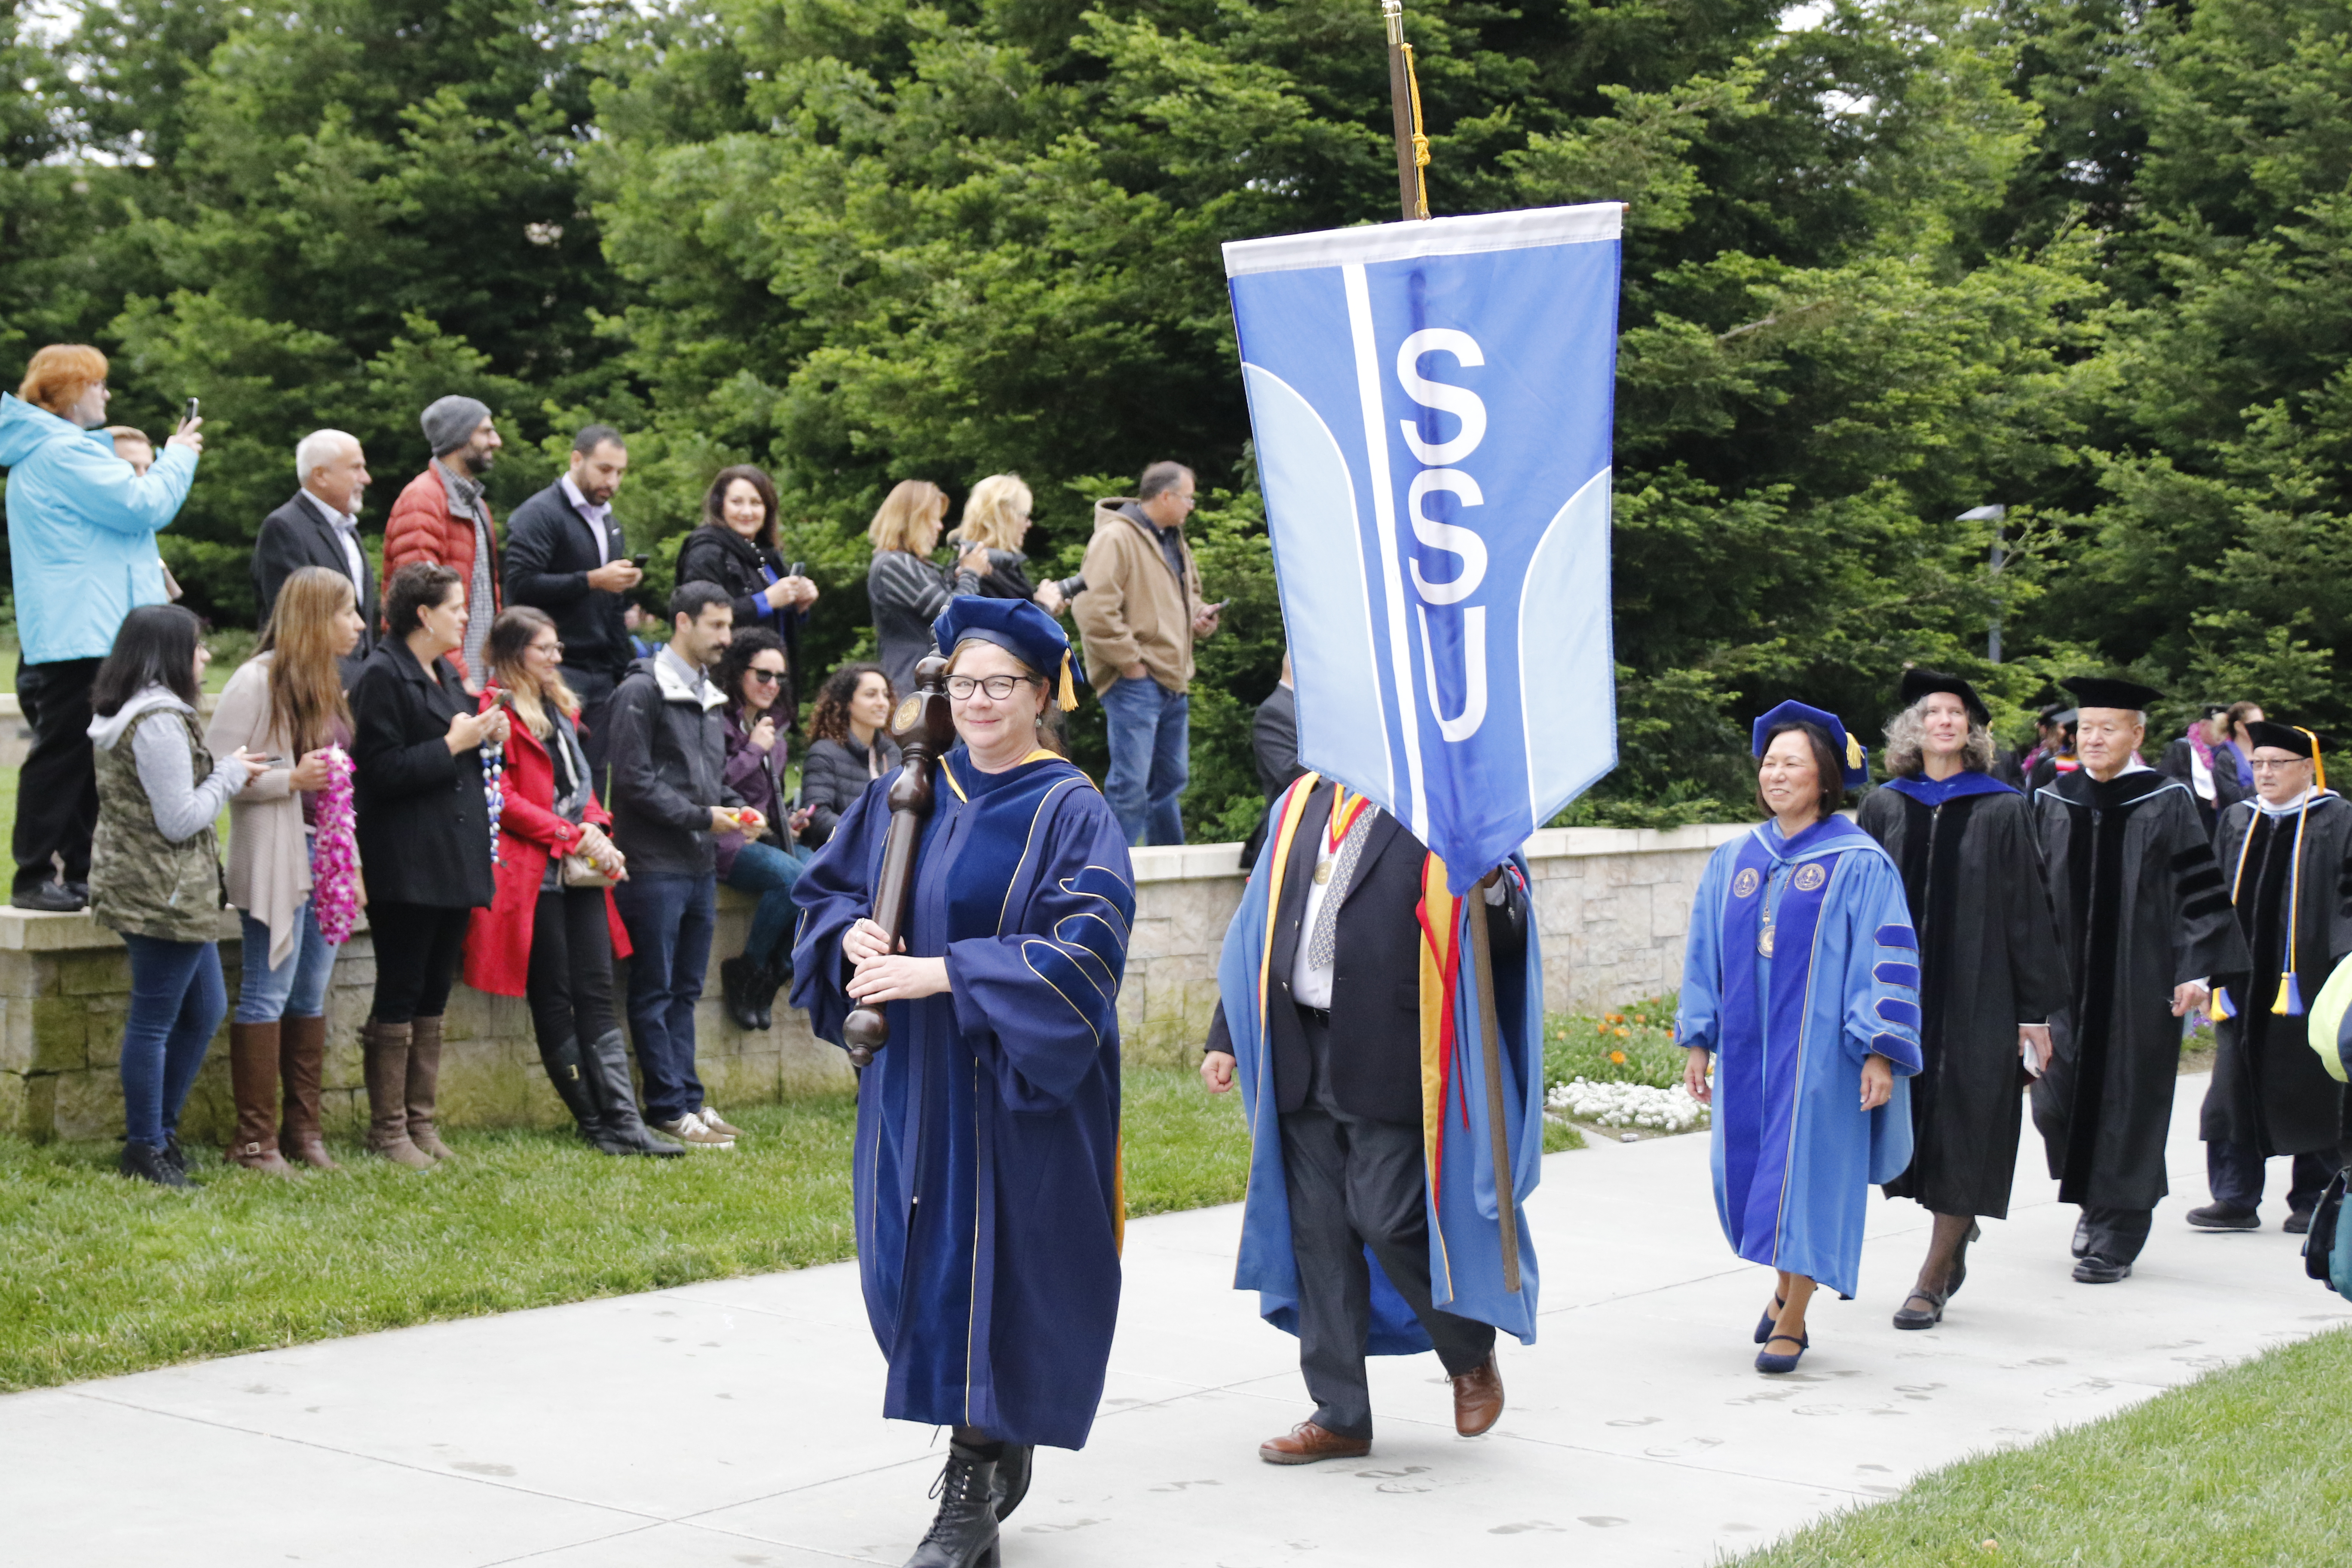 Processional of faculty with SSU banner at commencement